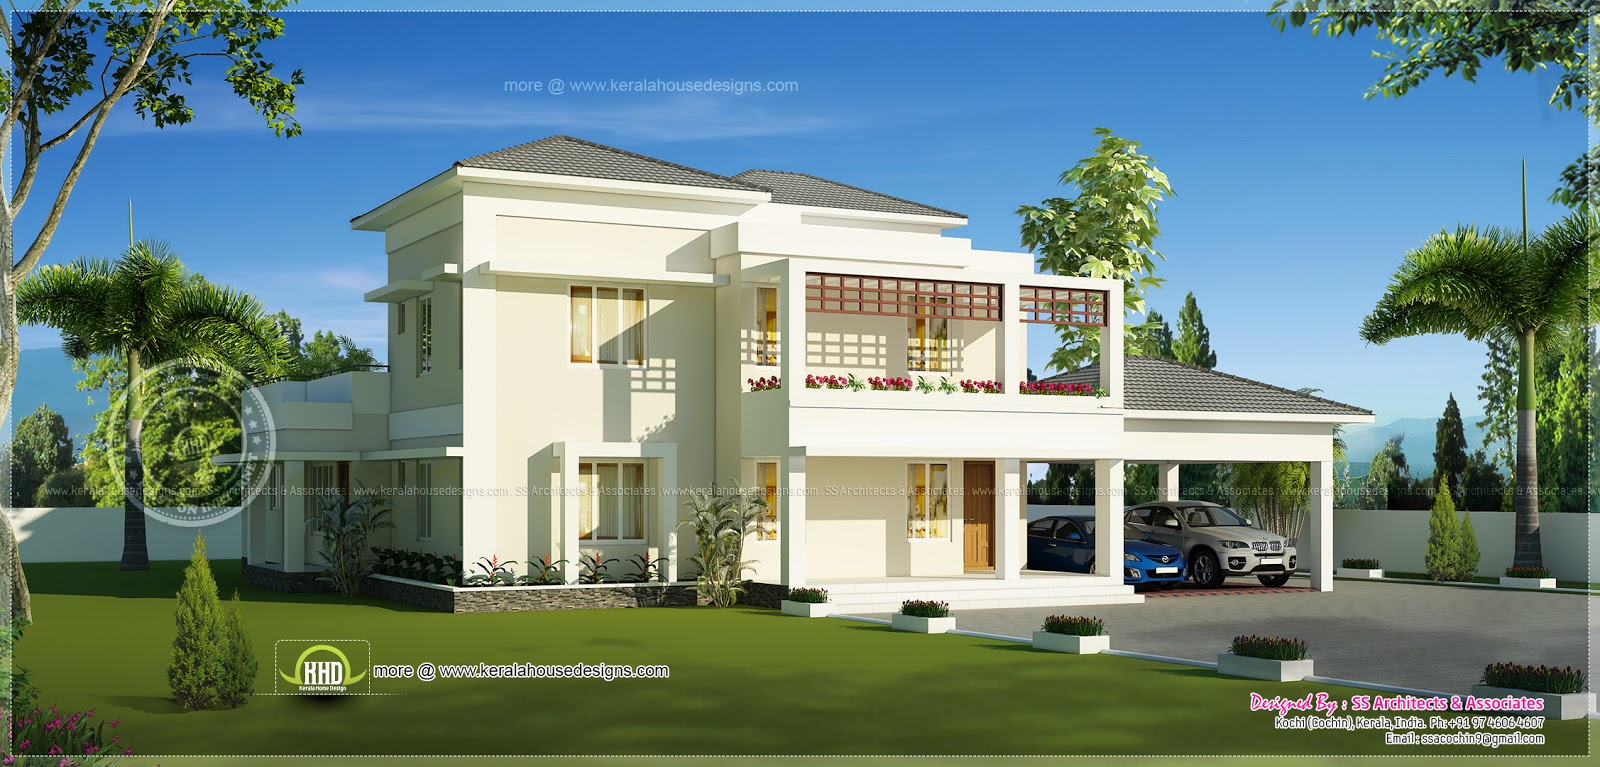 Beautiful double storey modern villa exterior - Kerala